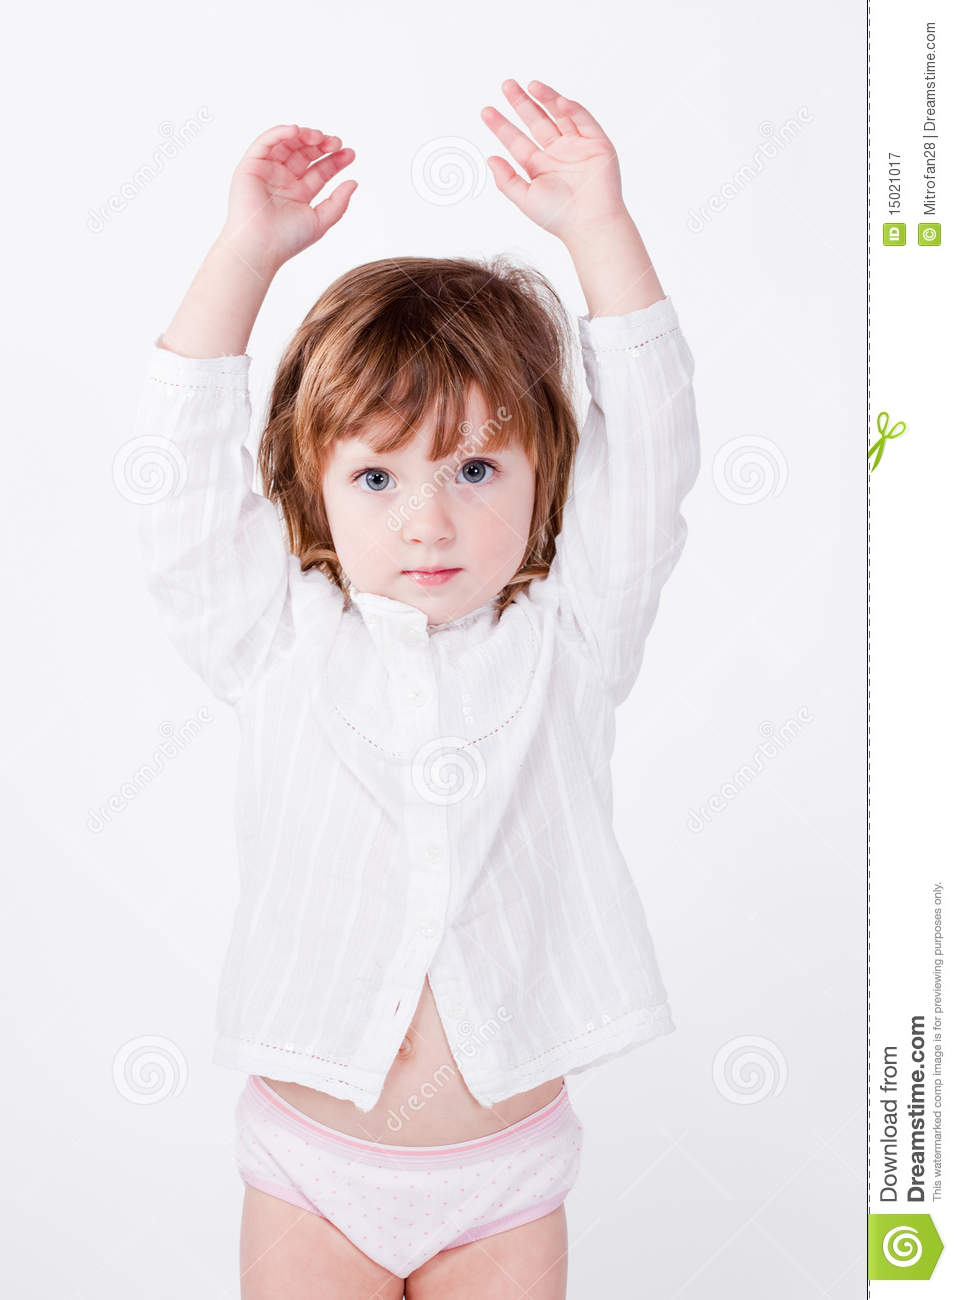 Cute Child Standing With Hands Up Stock Image - Image ...